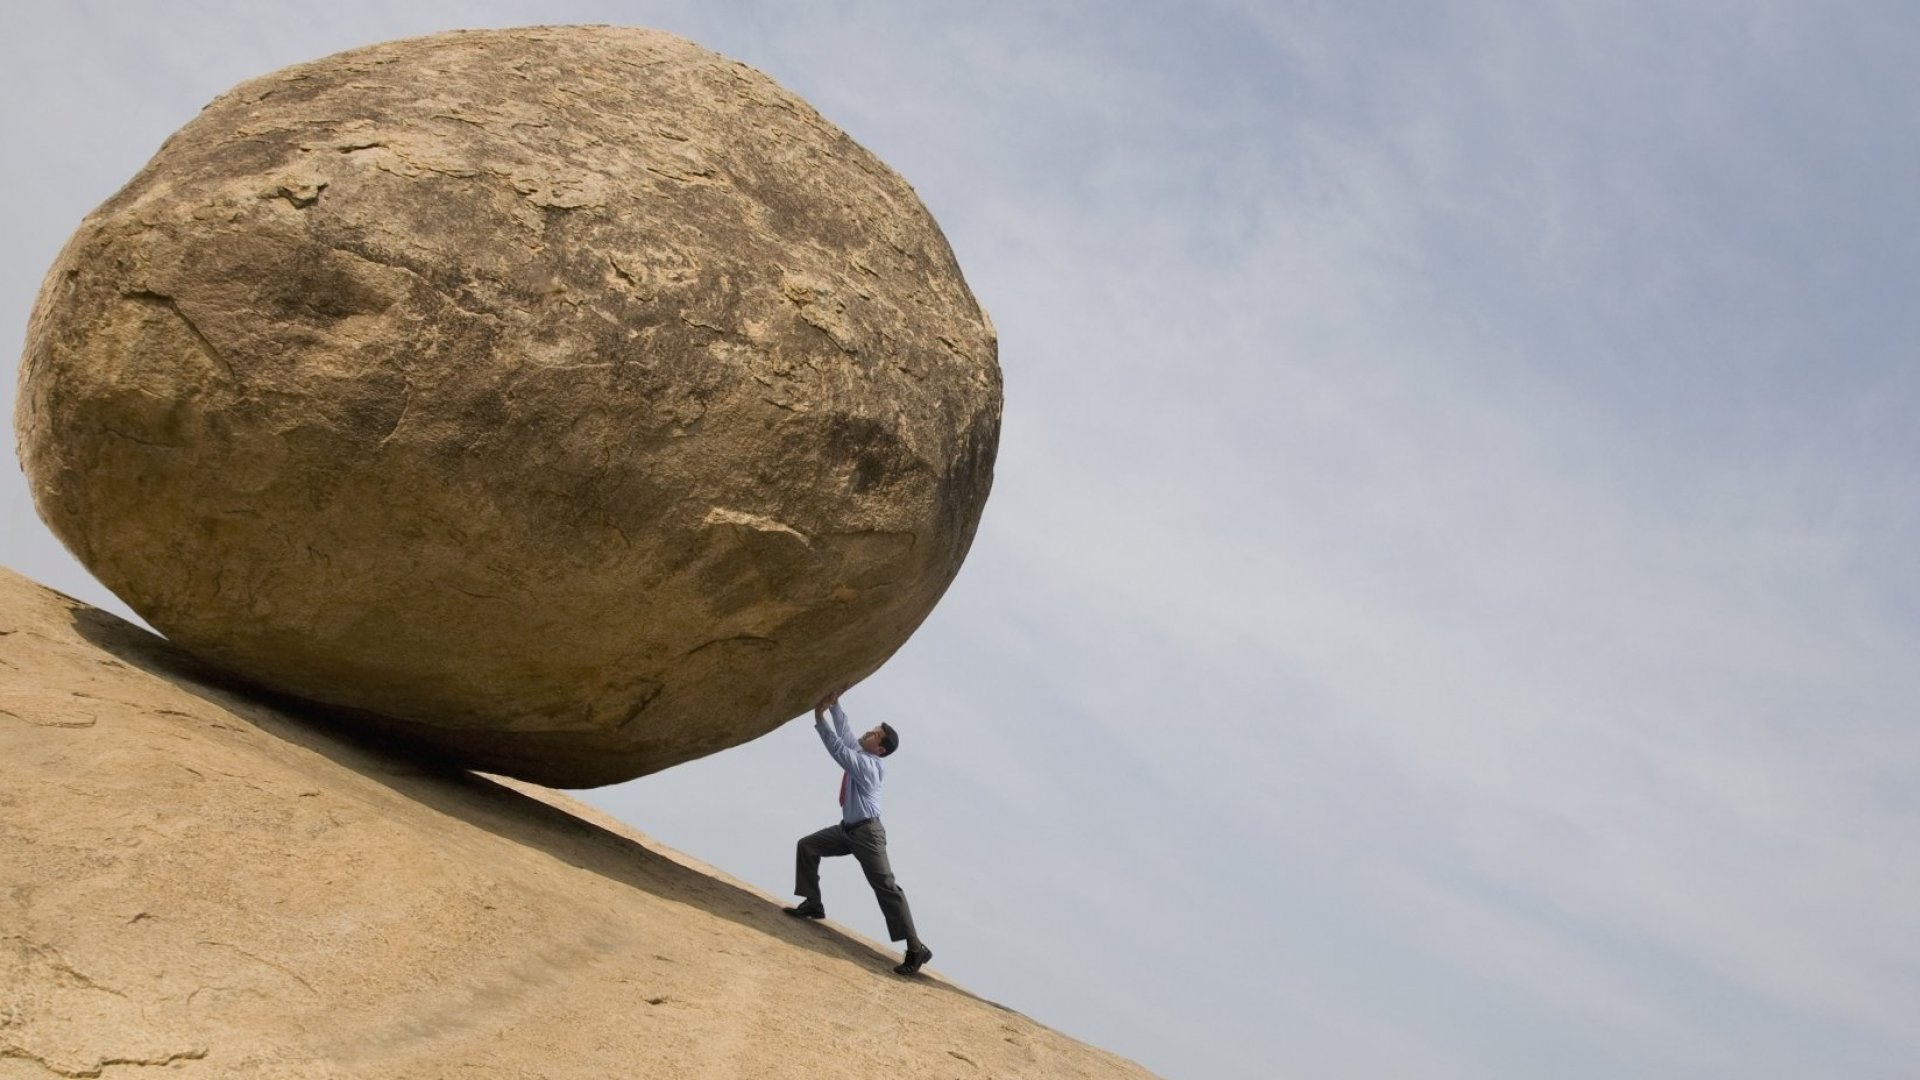 7 Ways Successful Entrepreneurs Overcome Difficult Obstacles